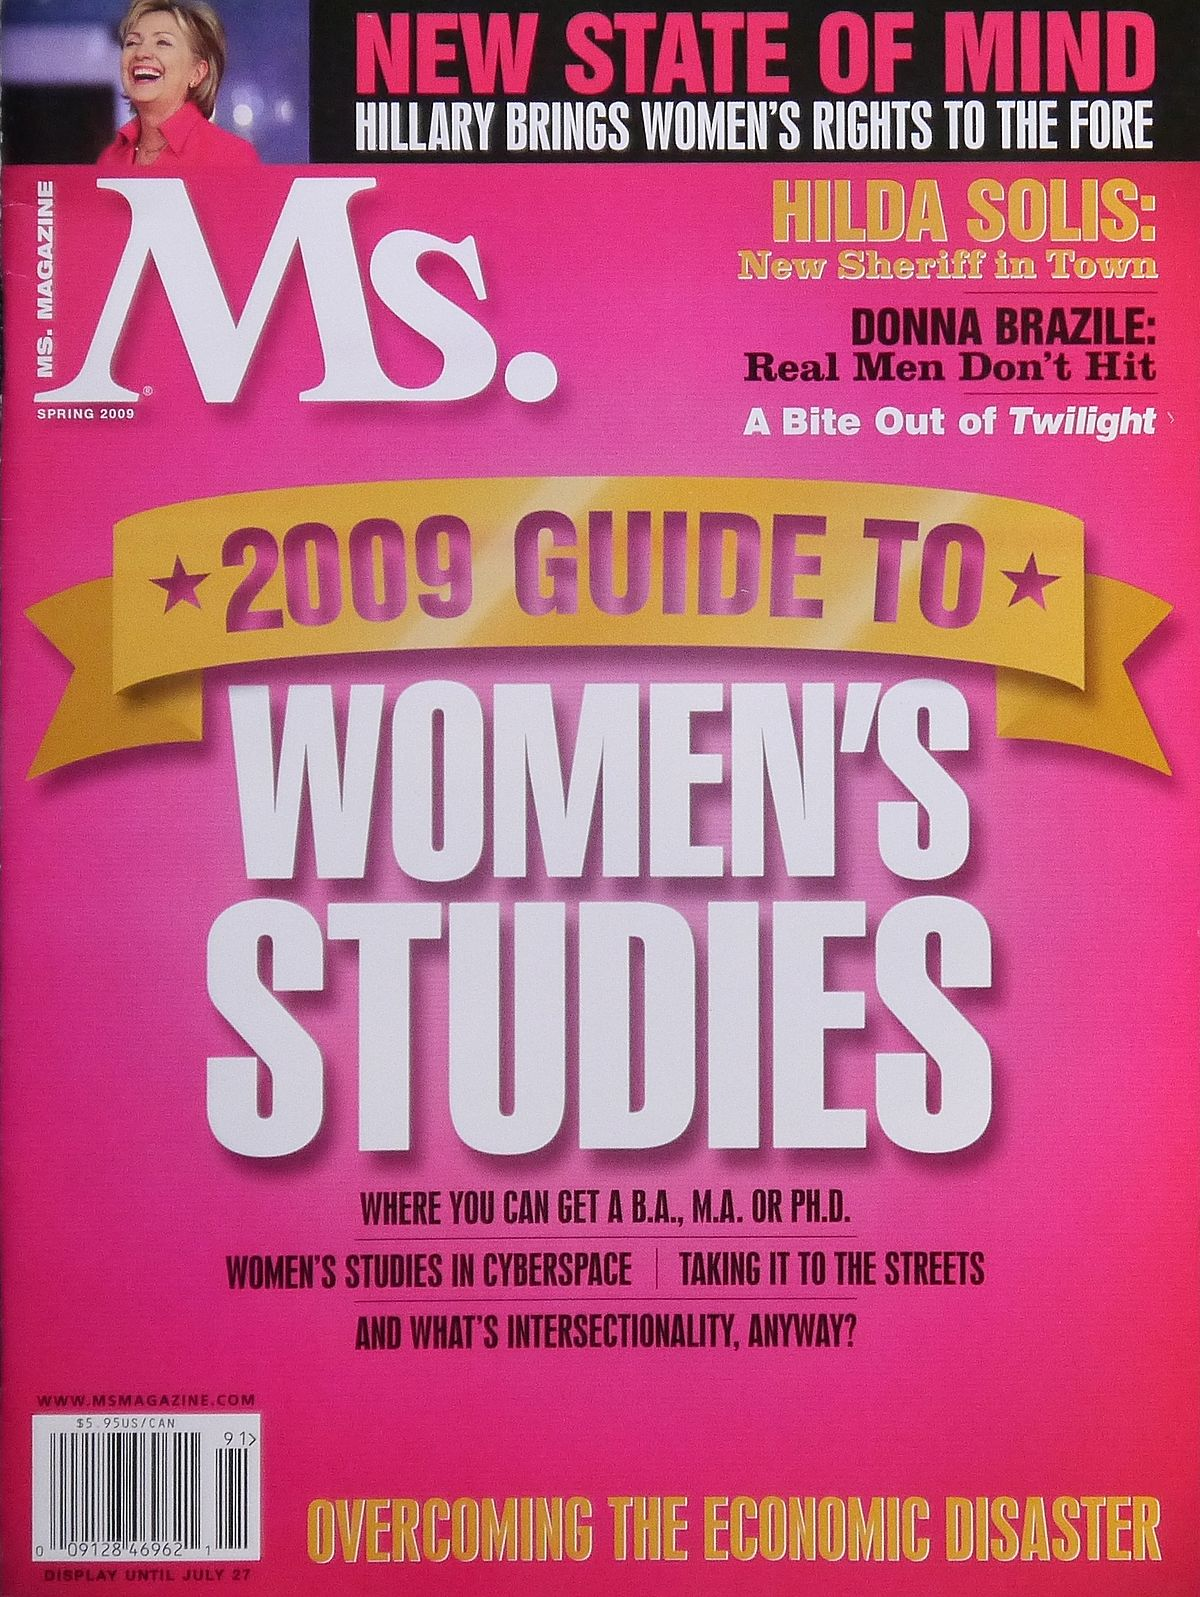 women and gender studies The women and gender studies program is an interdisciplinary academic program that focuses on women and gender issues in society and offers an undergraduate major and minor founded in 1978, the program is housed in the college of arts, humanities and social sciences.